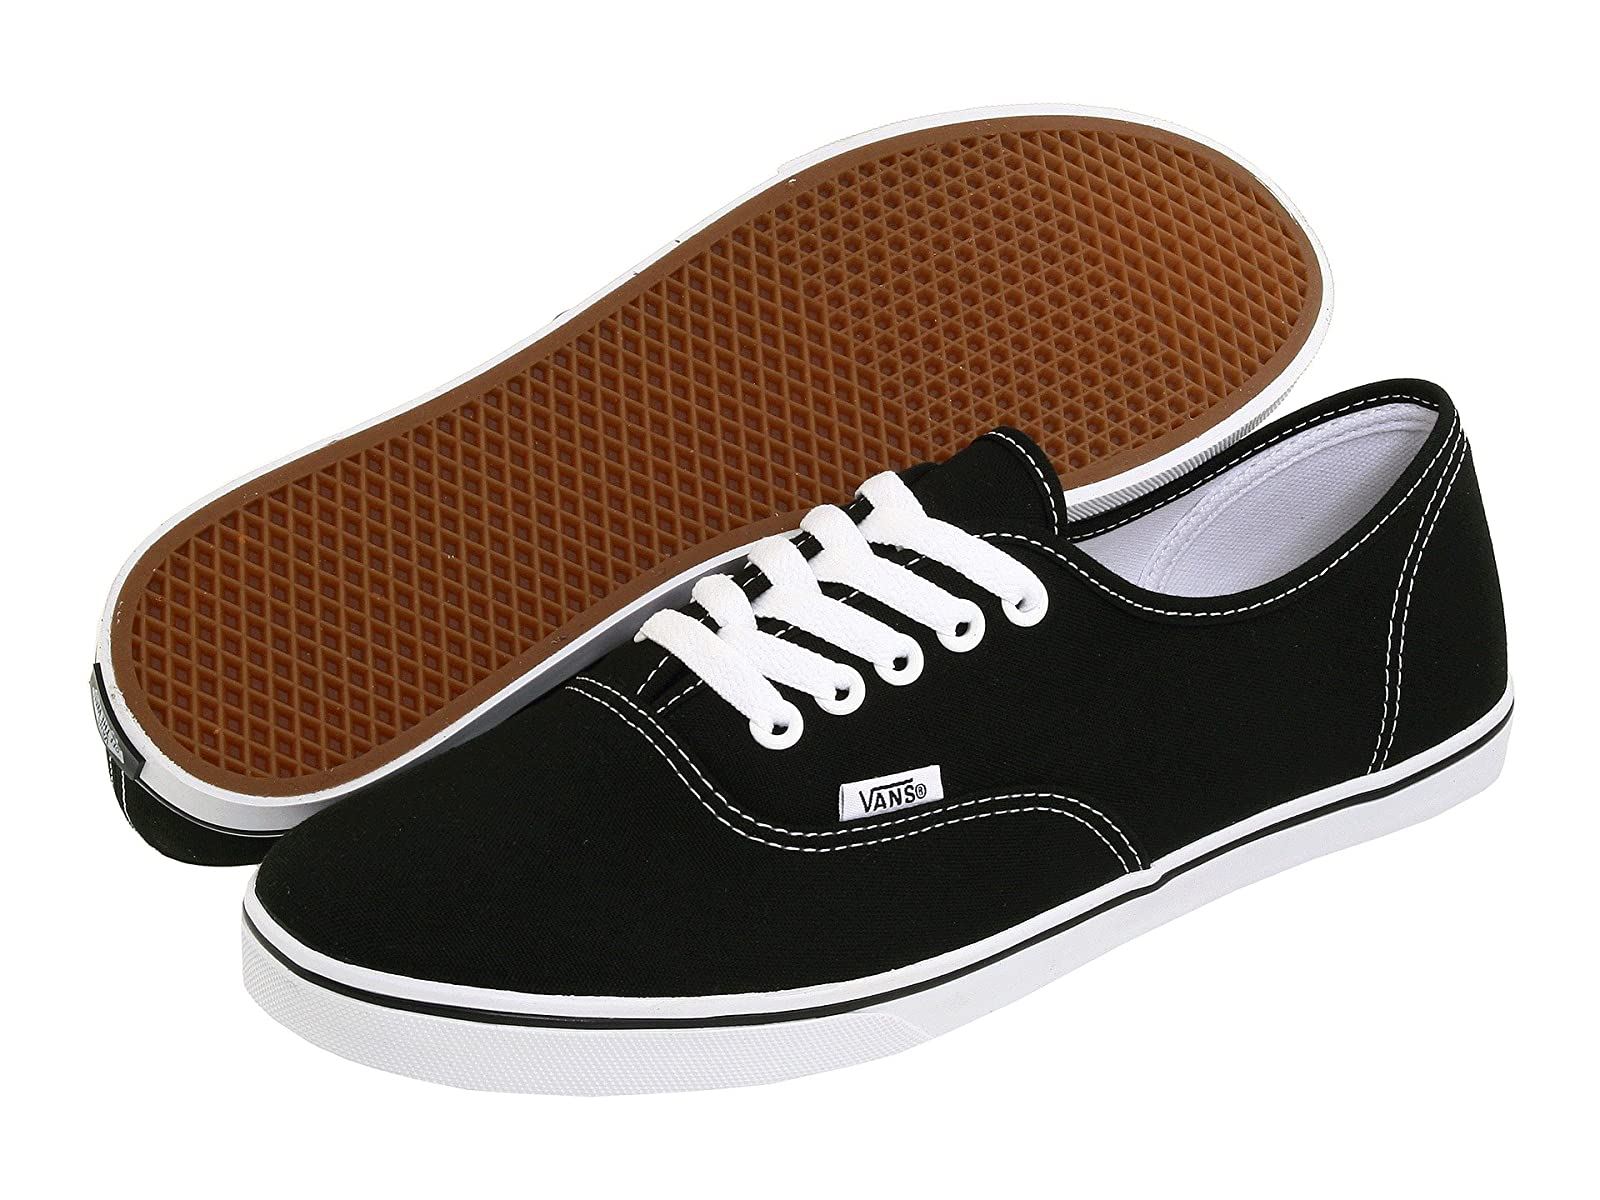 Vans Authentic™ Lo ProAtmospheric grades have affordable shoes